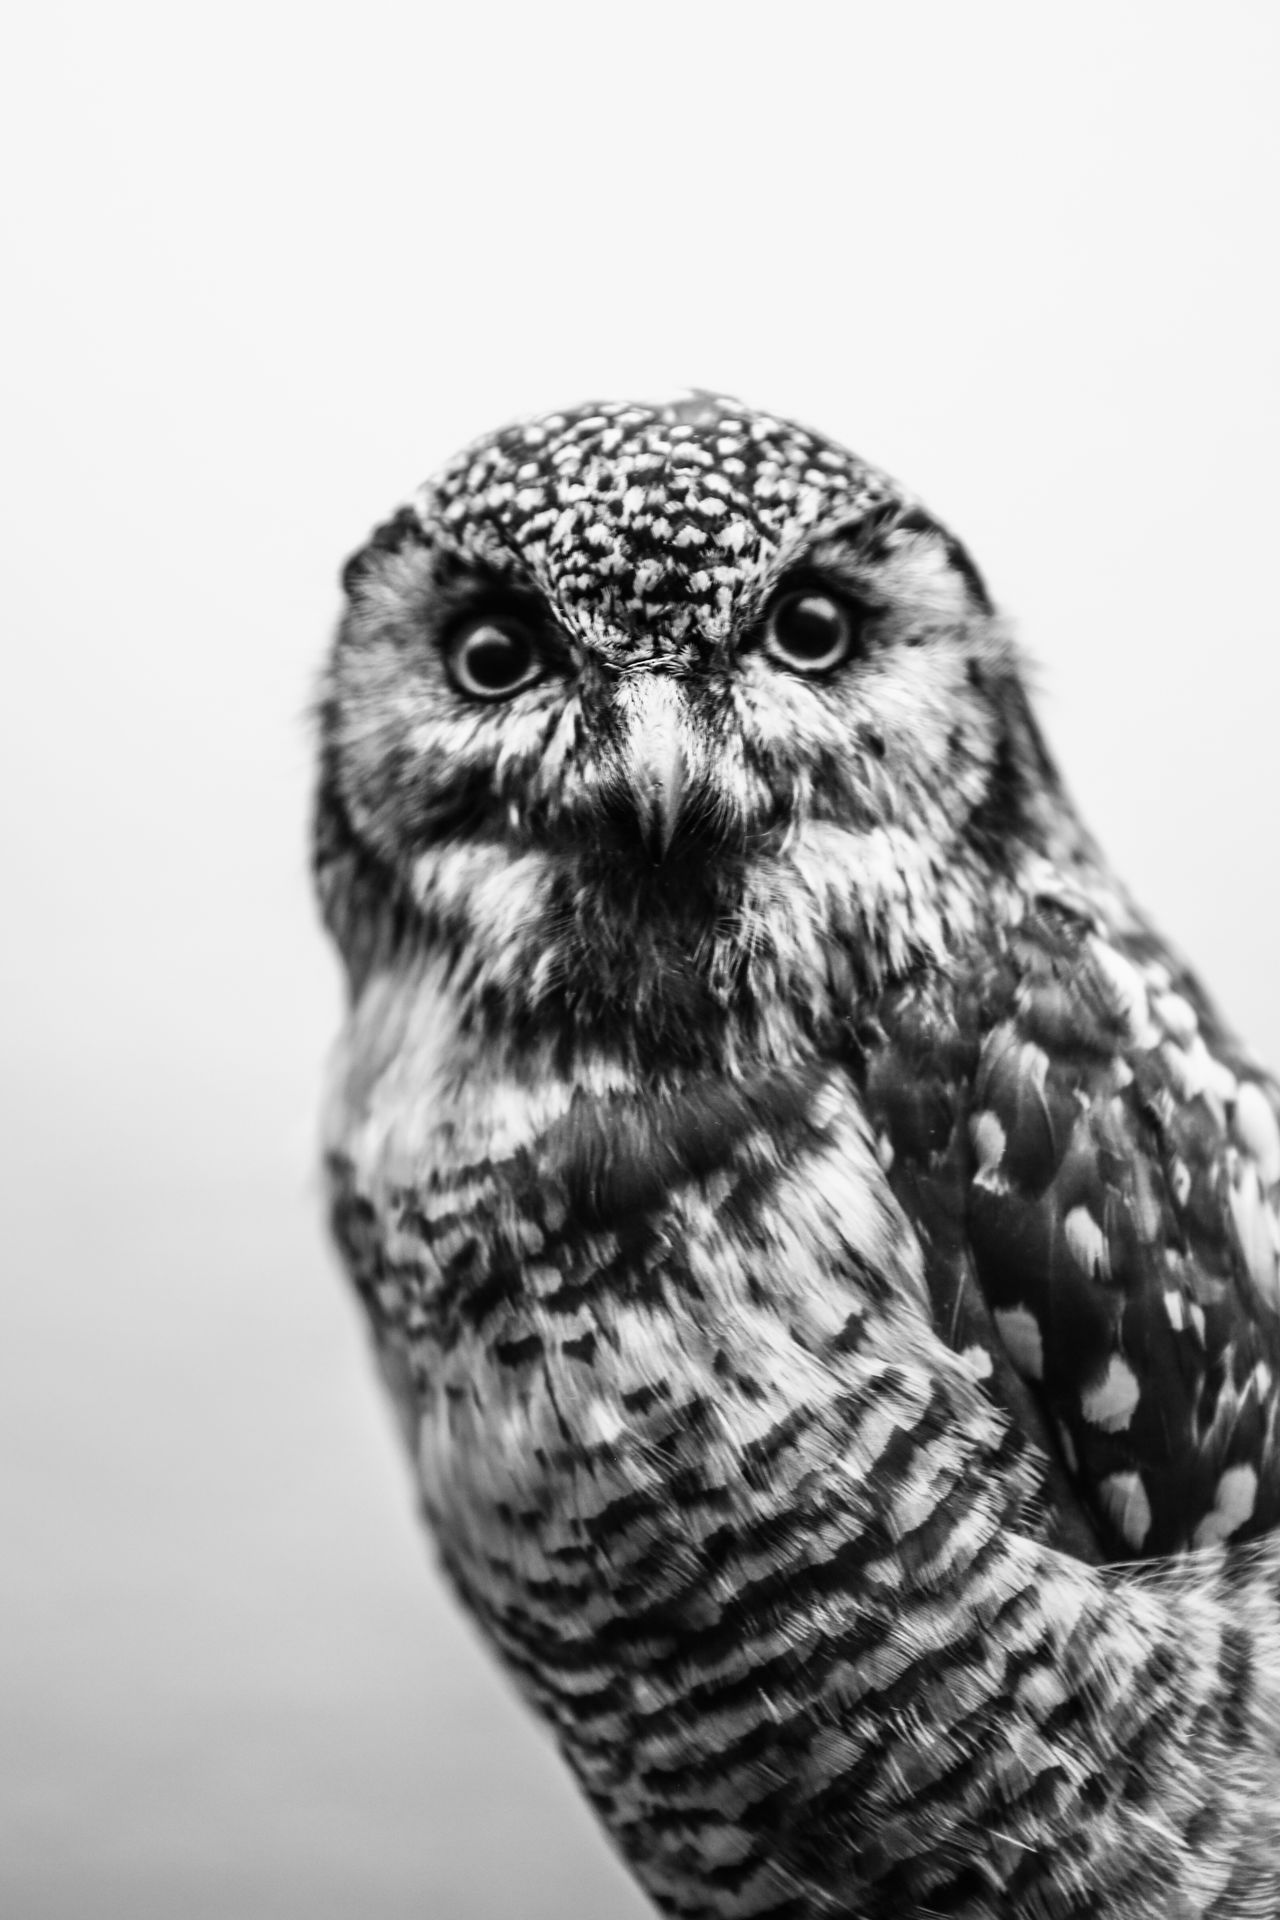 Animal Themes Animal Wildlife Animals In The Wild Beak Bird Bird Of Prey Close-up Day Nature No People One Animal Outdoors Owl Owl Eyes